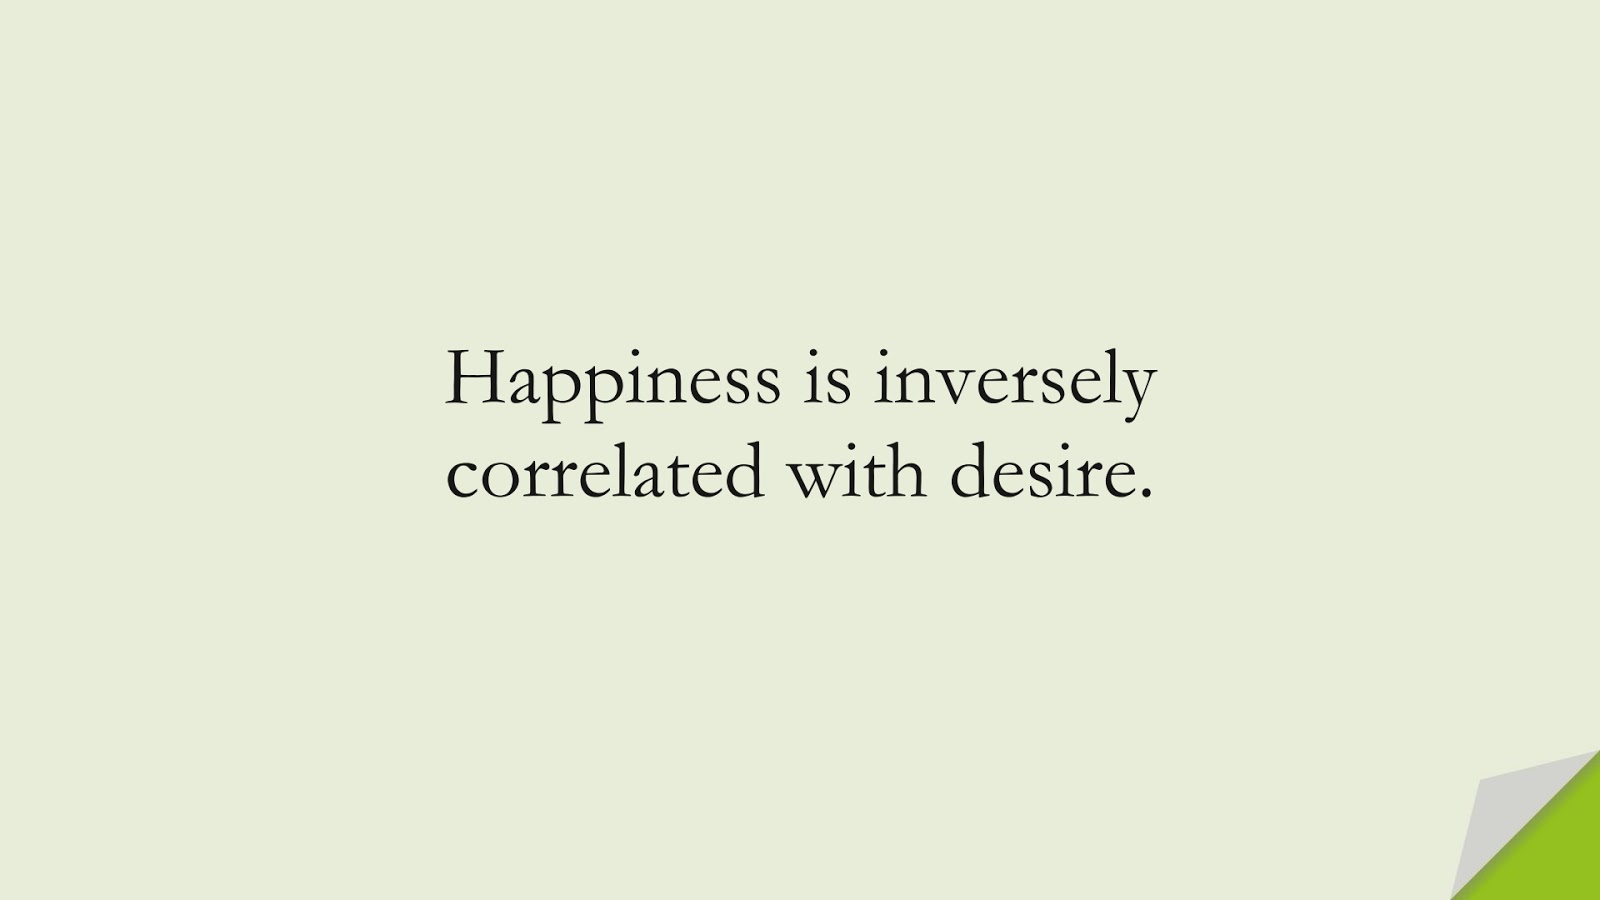 Happiness is inversely correlated with desire.FALSE